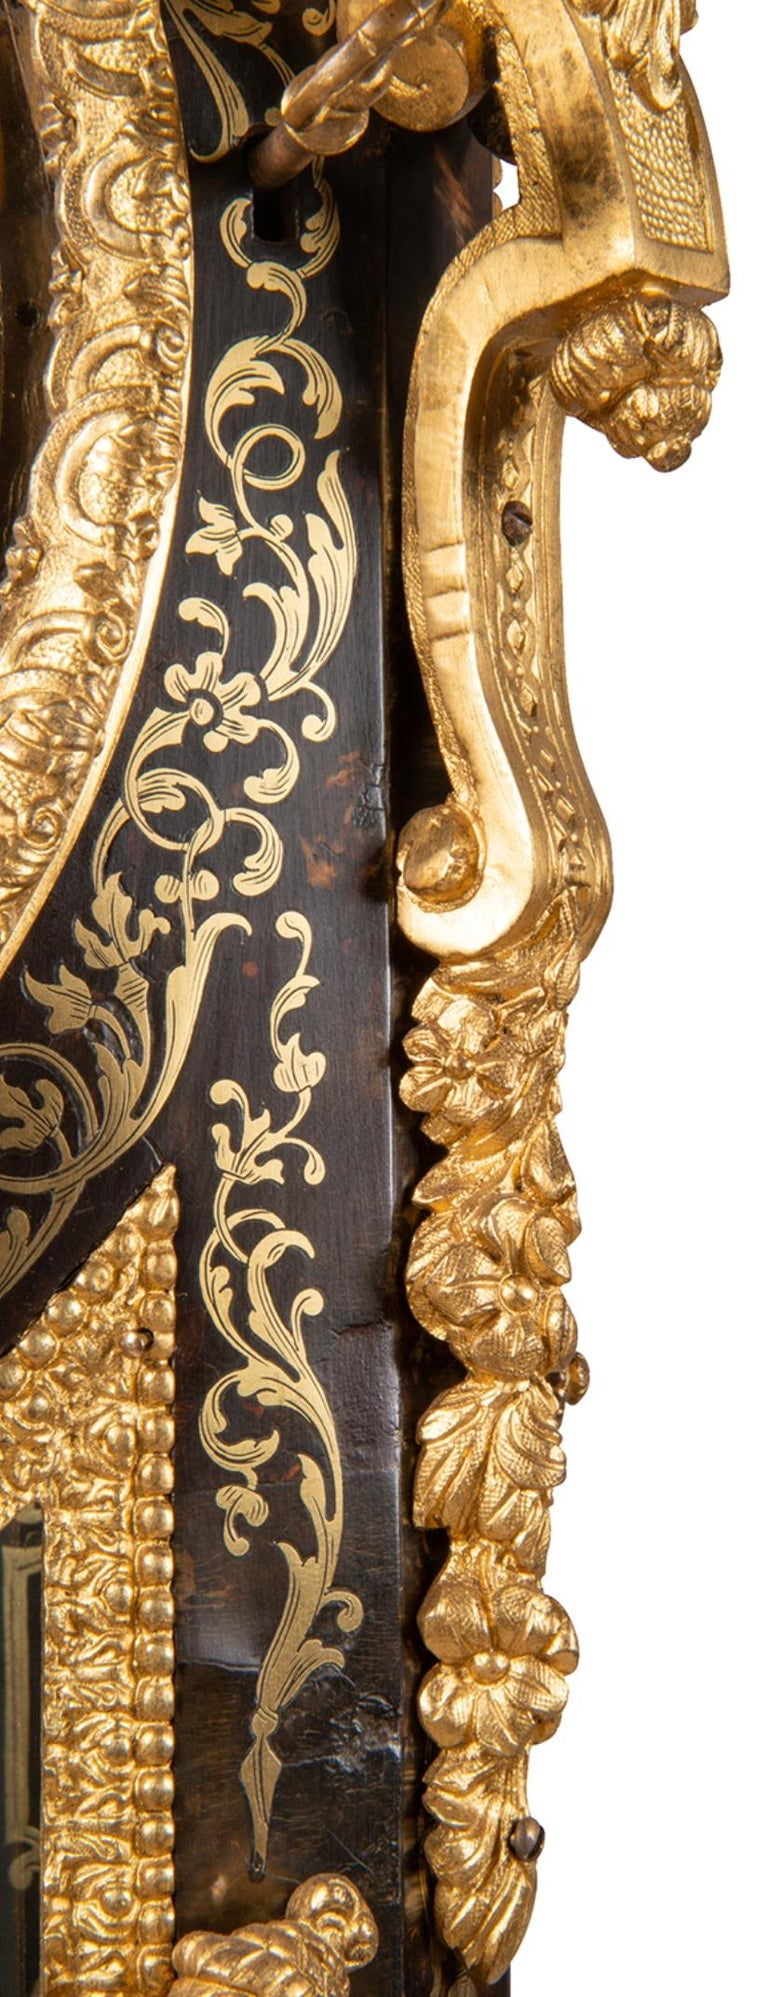 19th Century French Boulle Mantel Clock In Good Condition For Sale In Brighton, Sussex